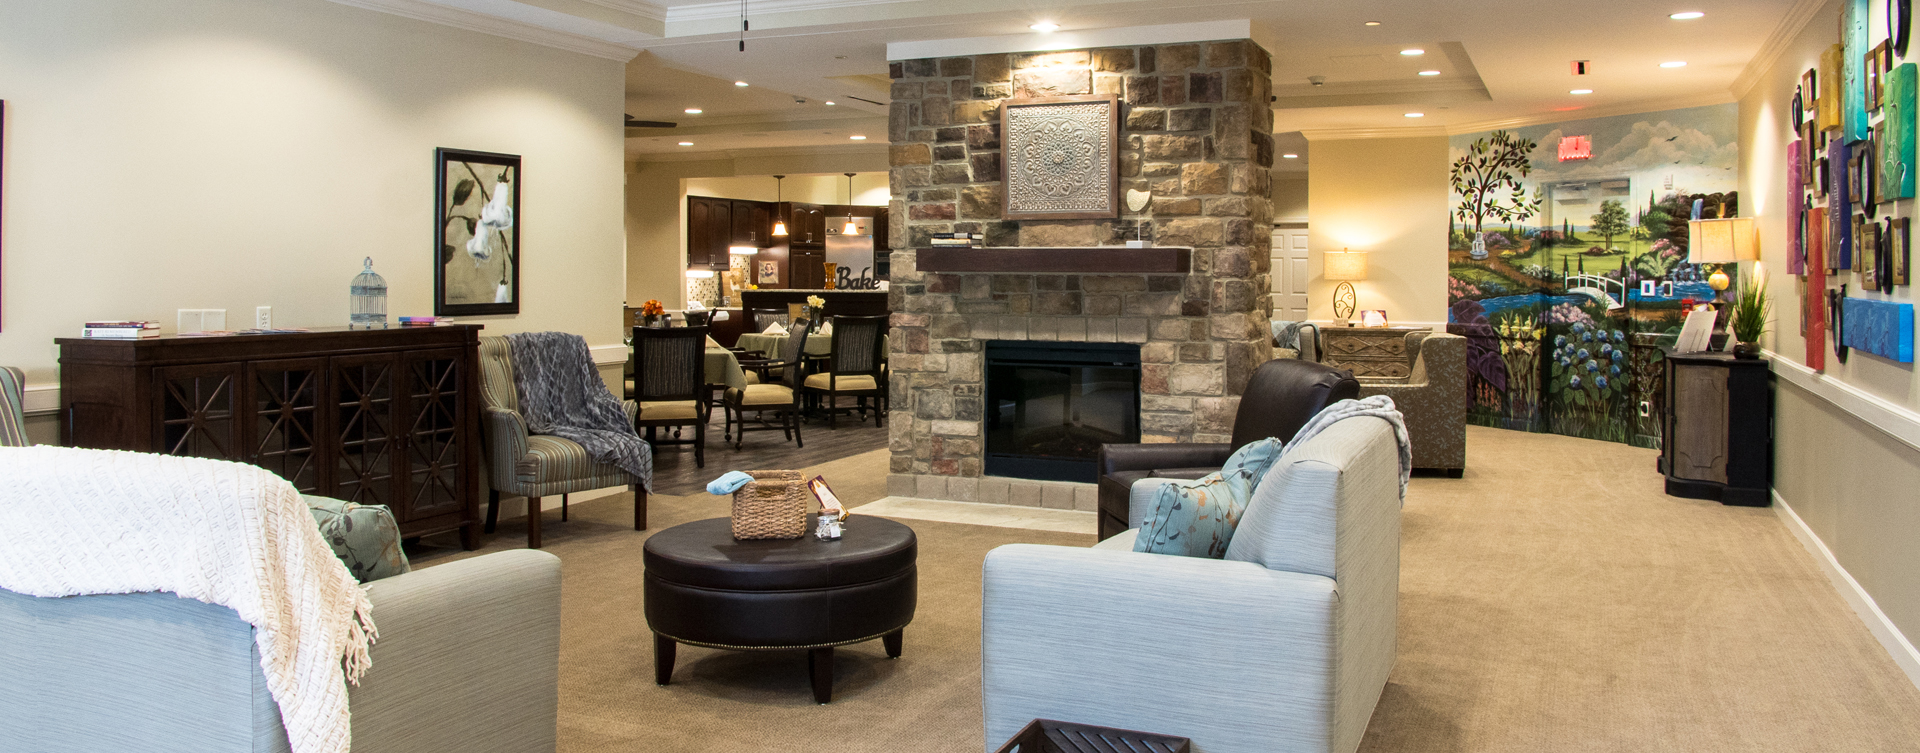 Mary B's living room provides a smaller, more intimate setting to encourage interaction at Bickford of Chesterfield